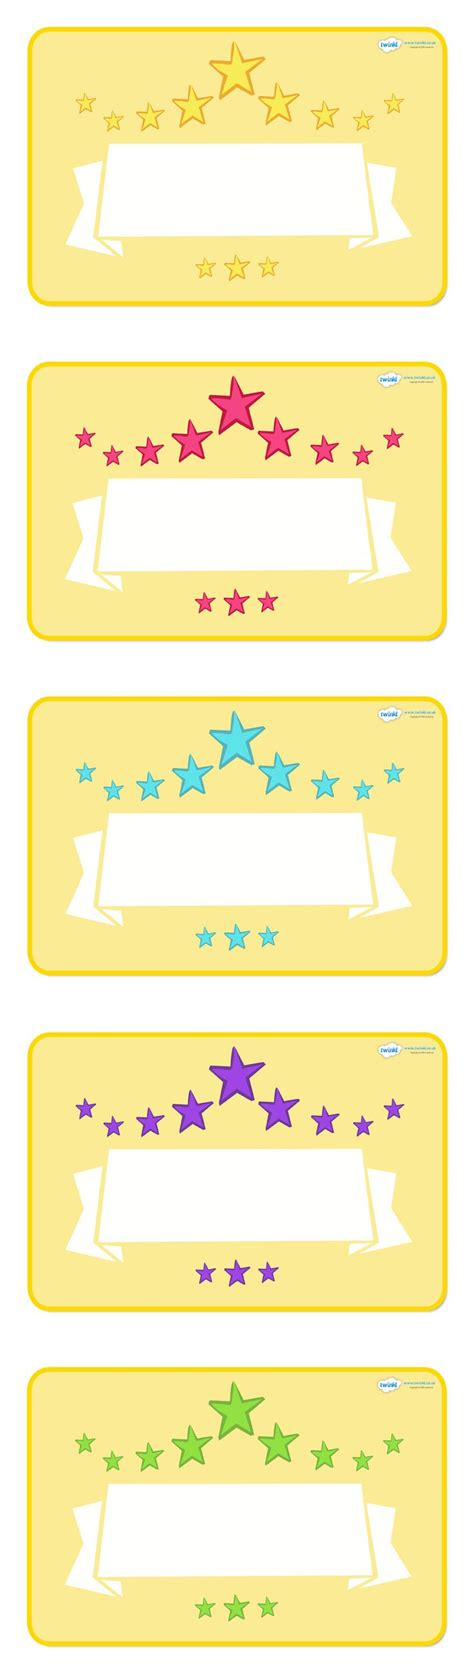 classroom rules template twinkl resources gt gt editable golden rules posters